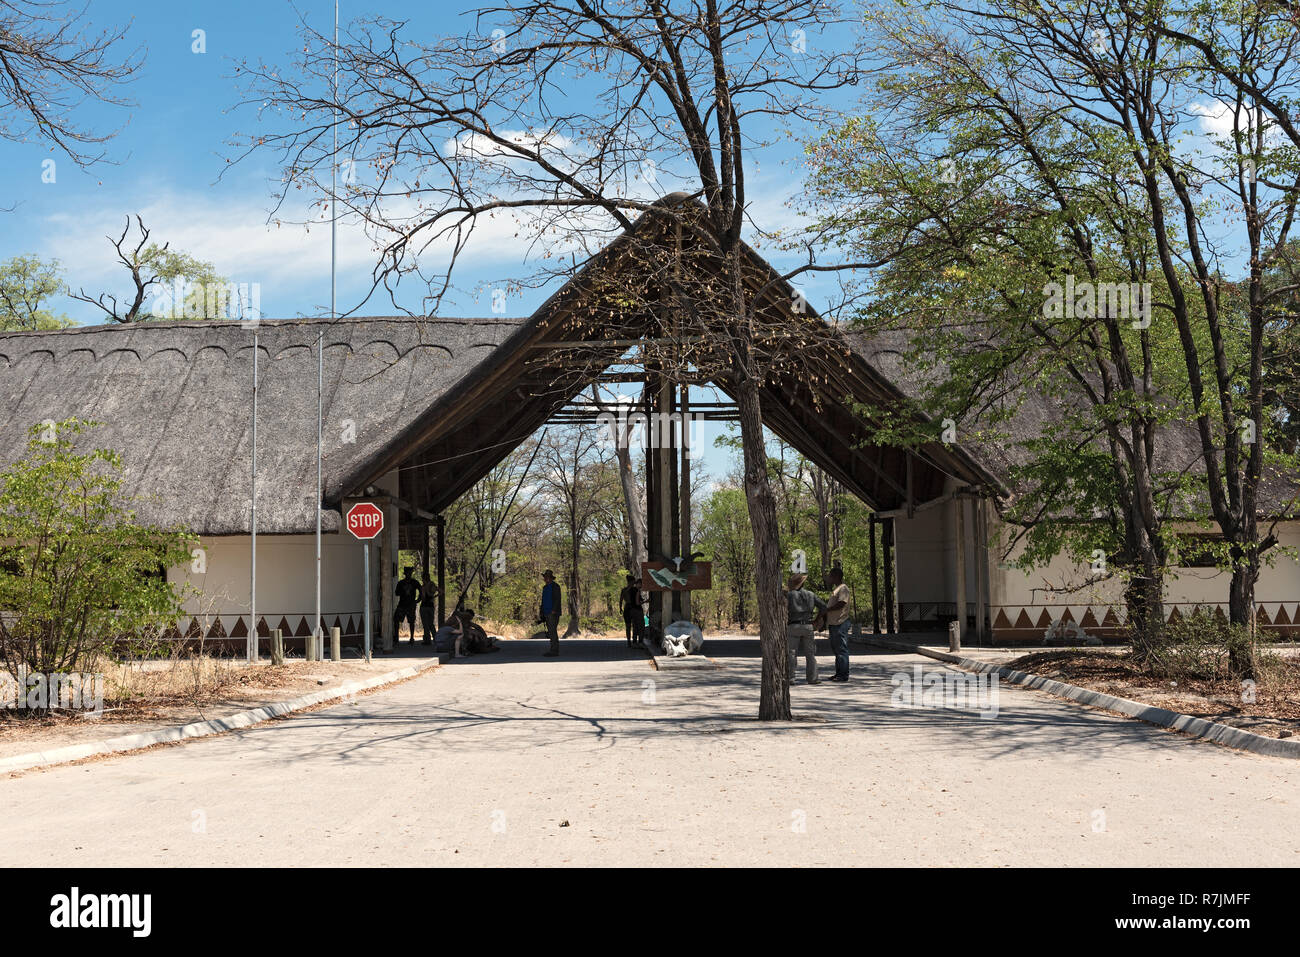 Entrance gate in the Moremi Game Reserve, Botswana, Africa - Stock Image